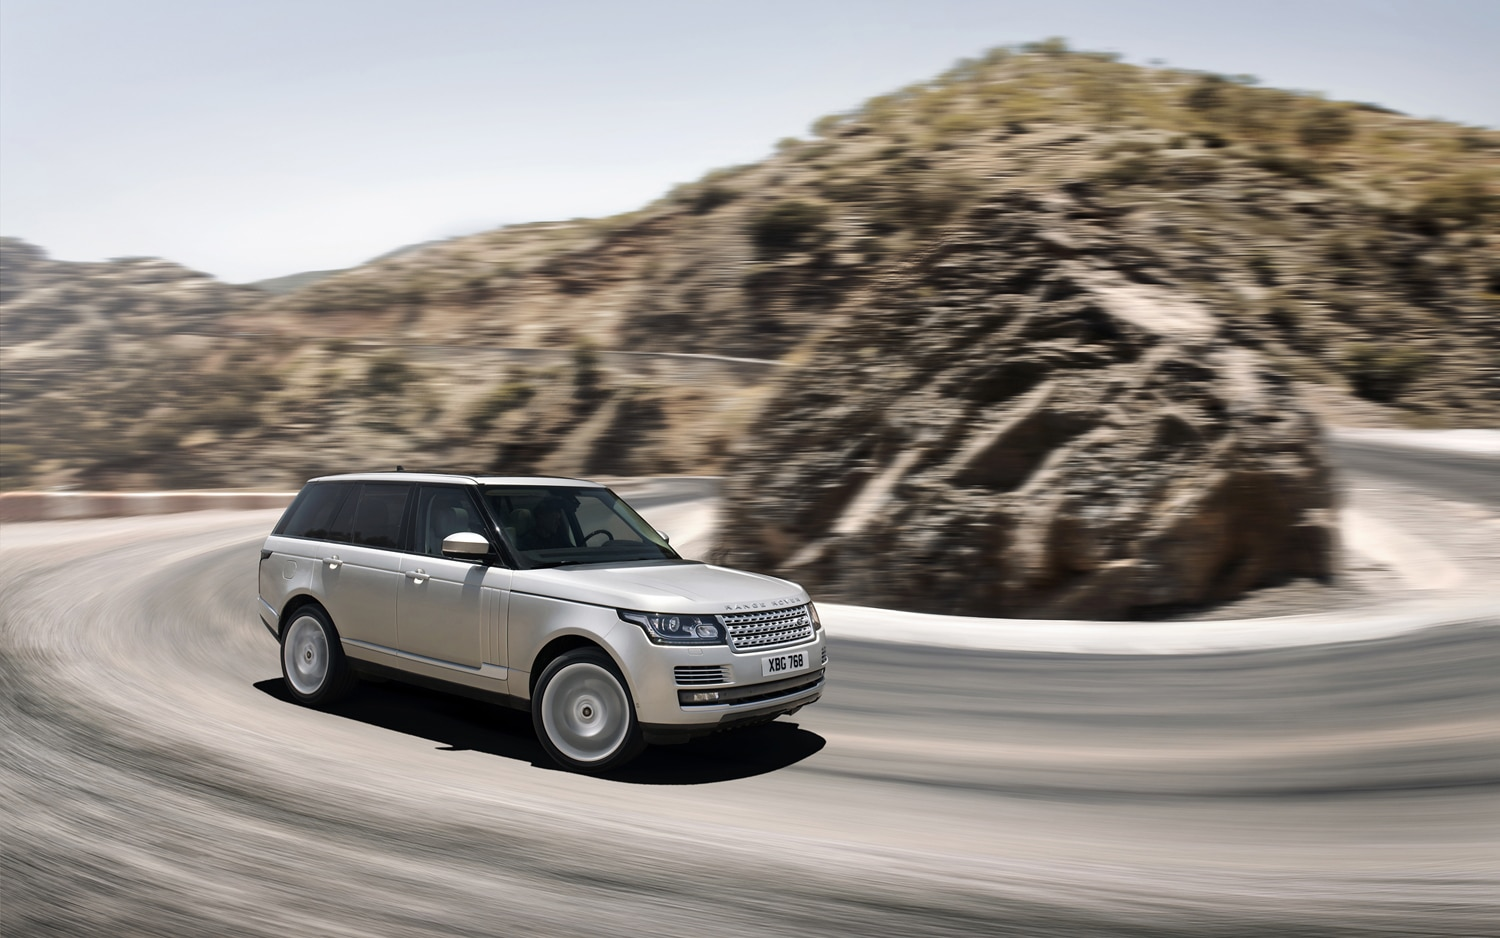 2013 Land Rover Range Rover Front Three Quarter Turn